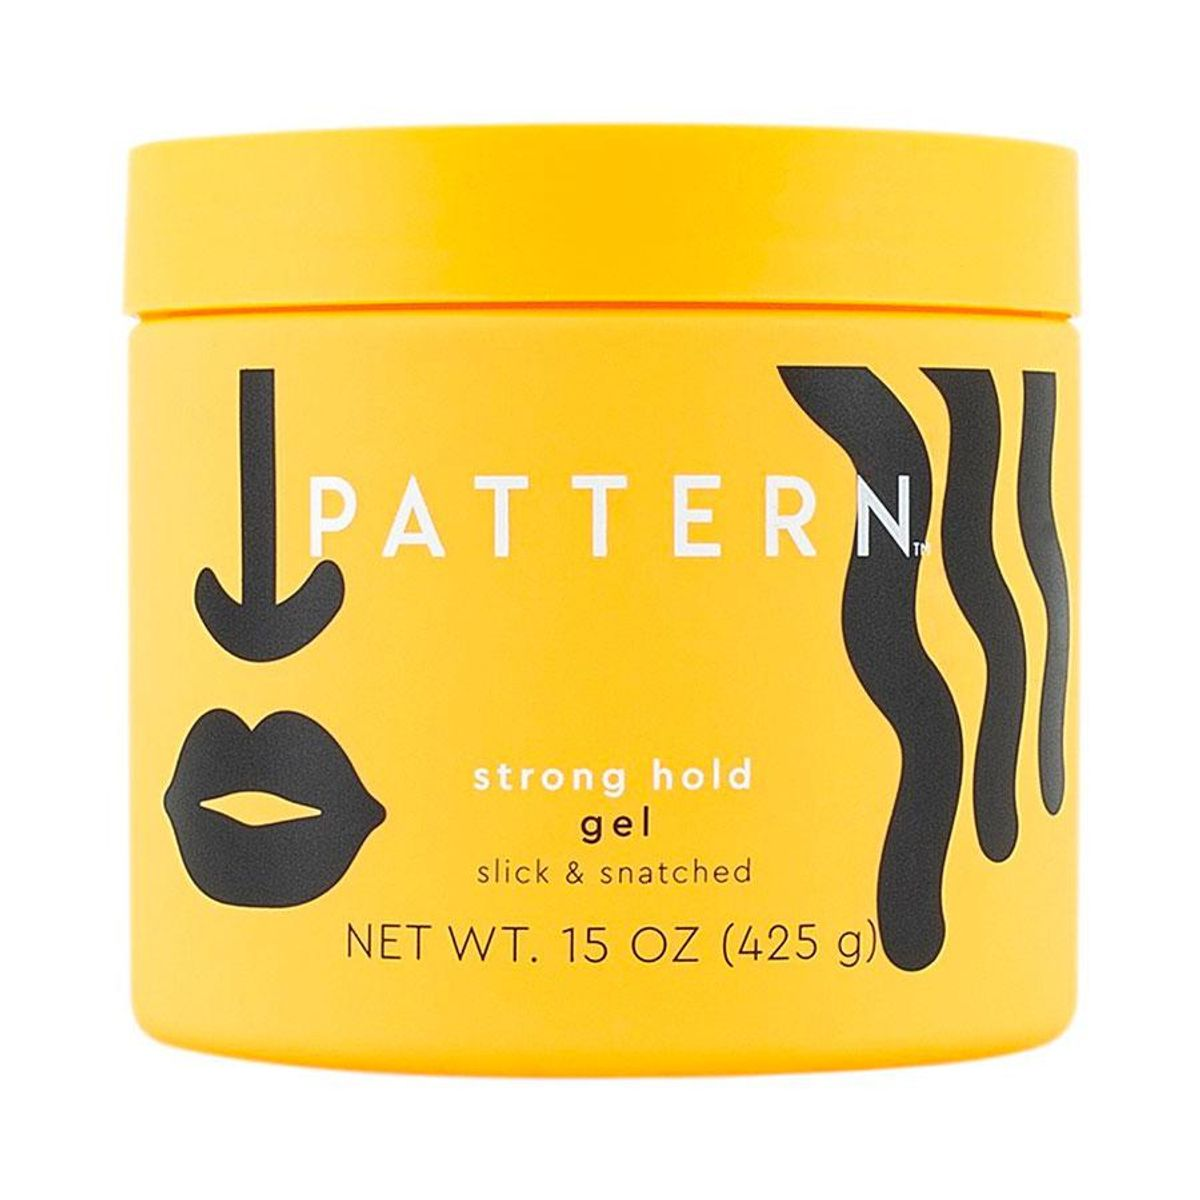 pattern strong hold gel